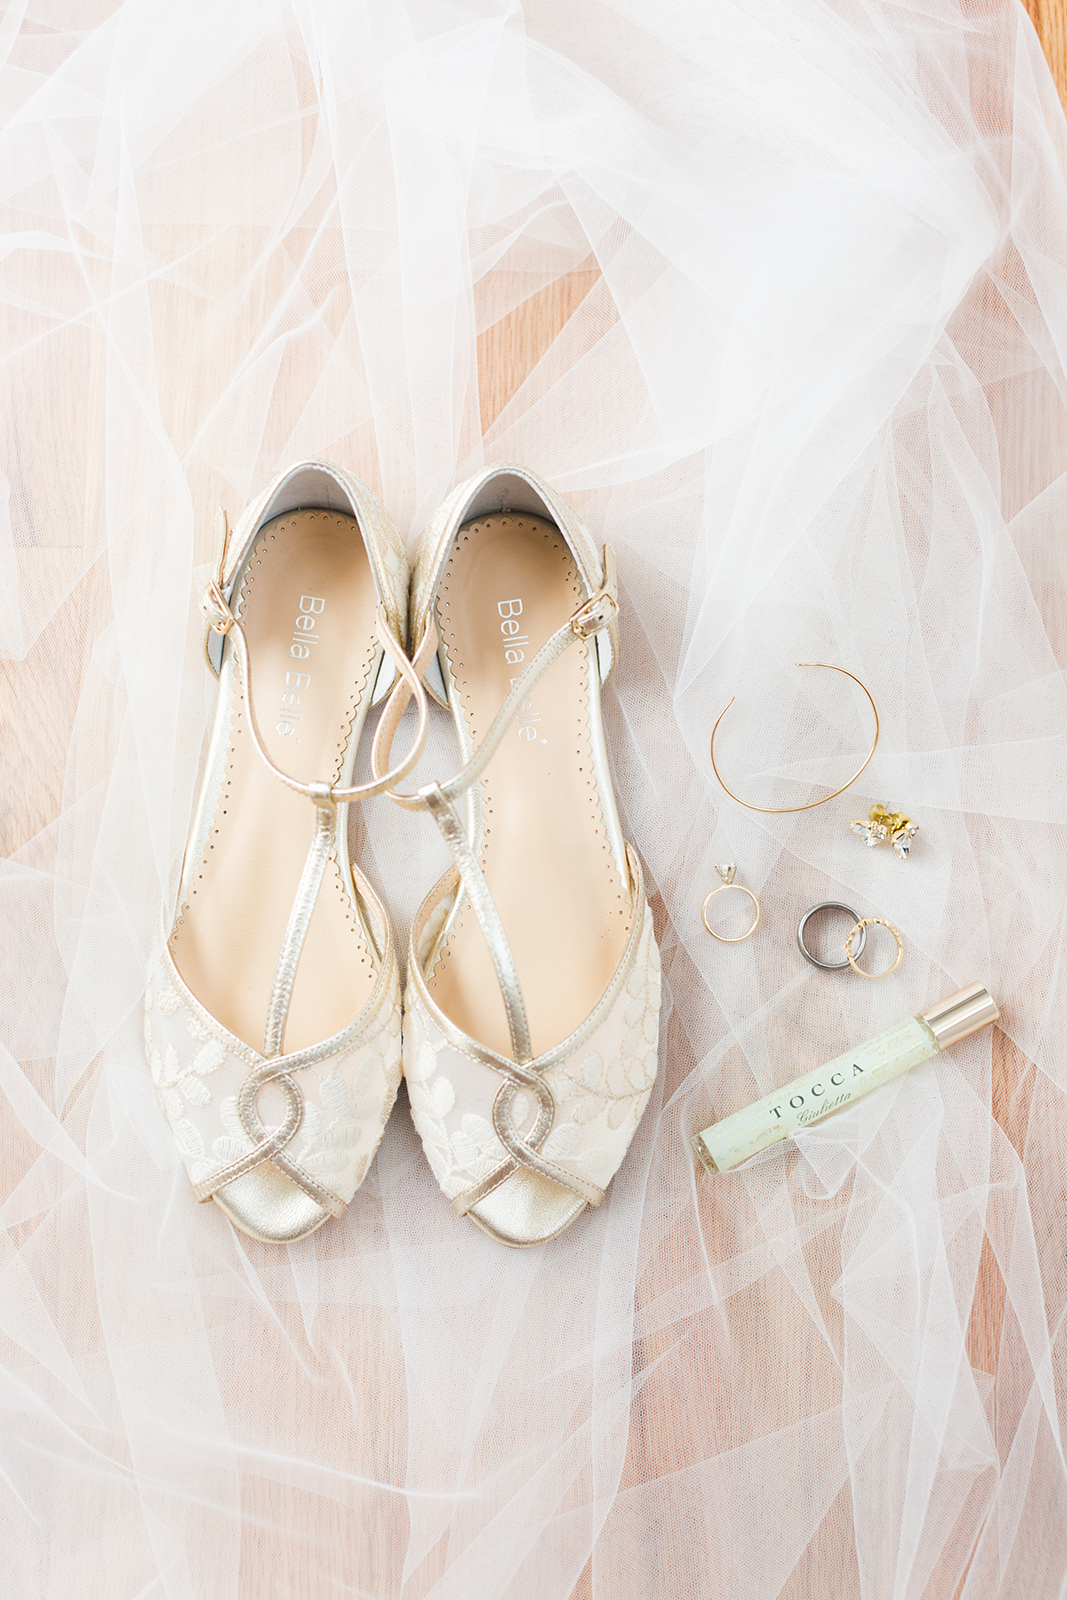 Real Wedding Shoes From Real Brides Brilliant Bridal